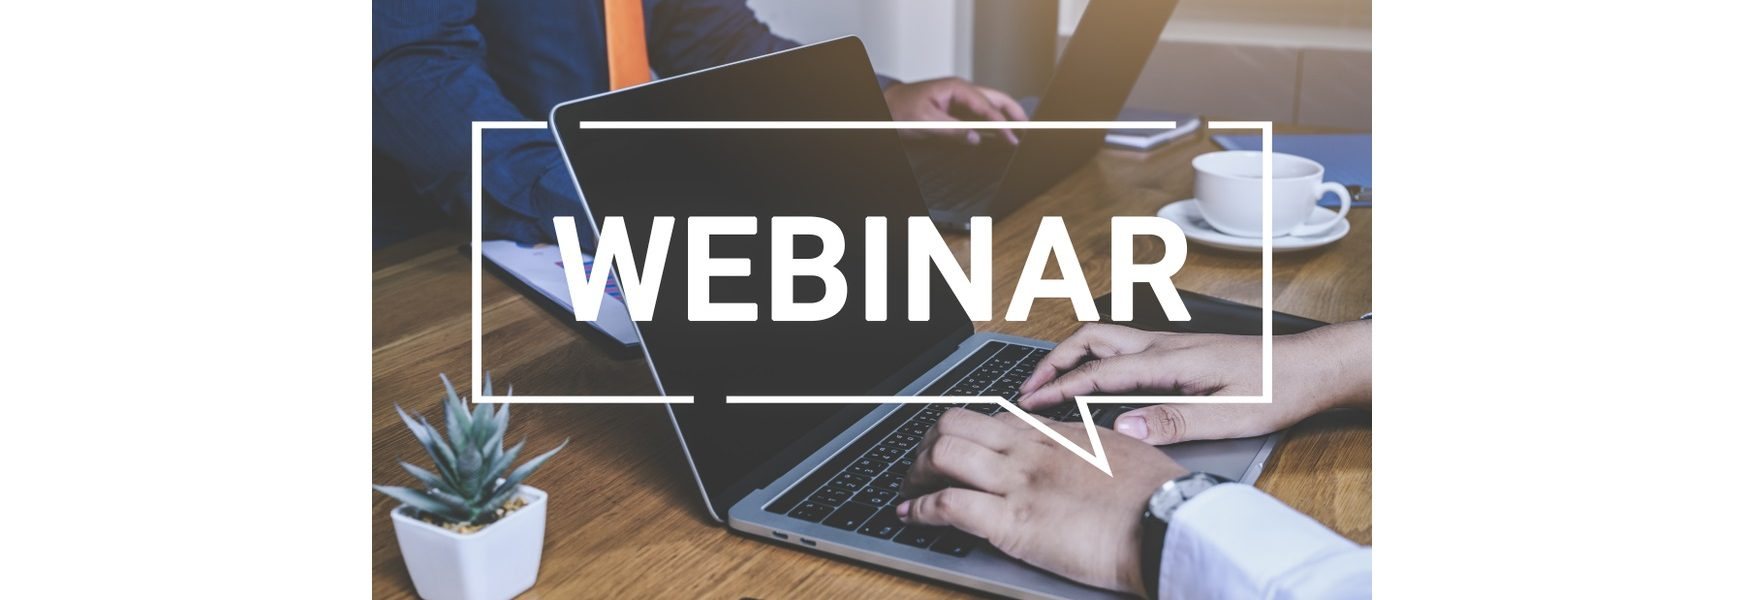 Webinar Part 3: Making the Most Out of Your Retirement